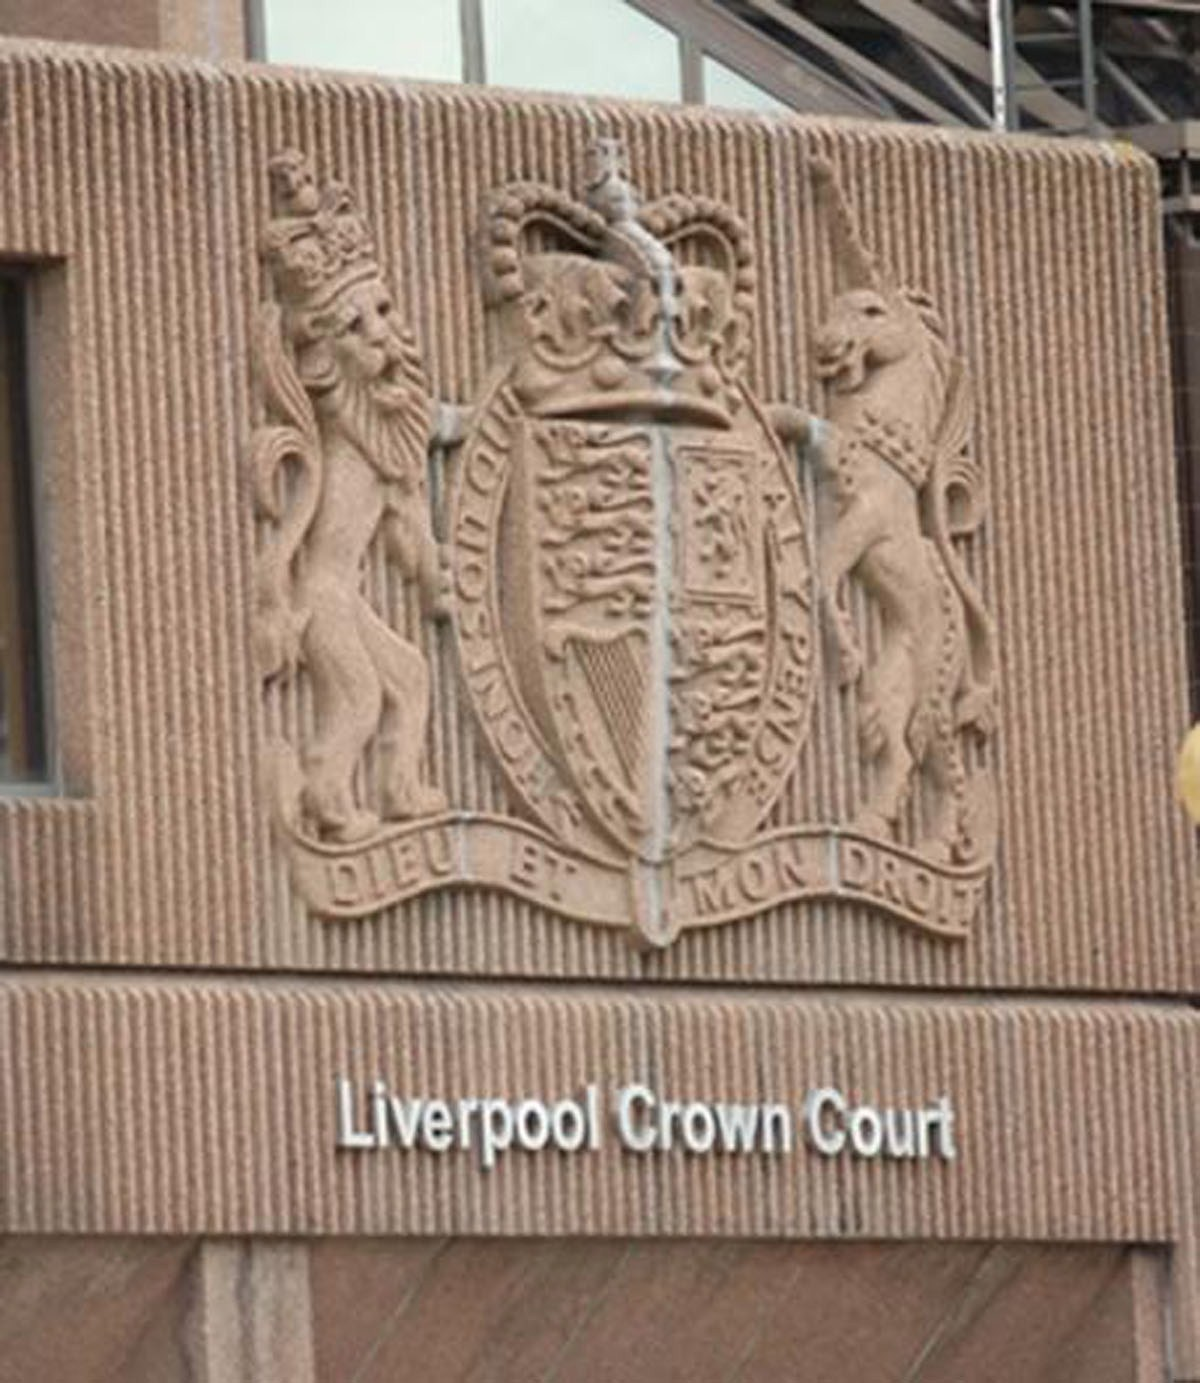 Richard Lovett was jailed for eight years at Liverpool Crown Court